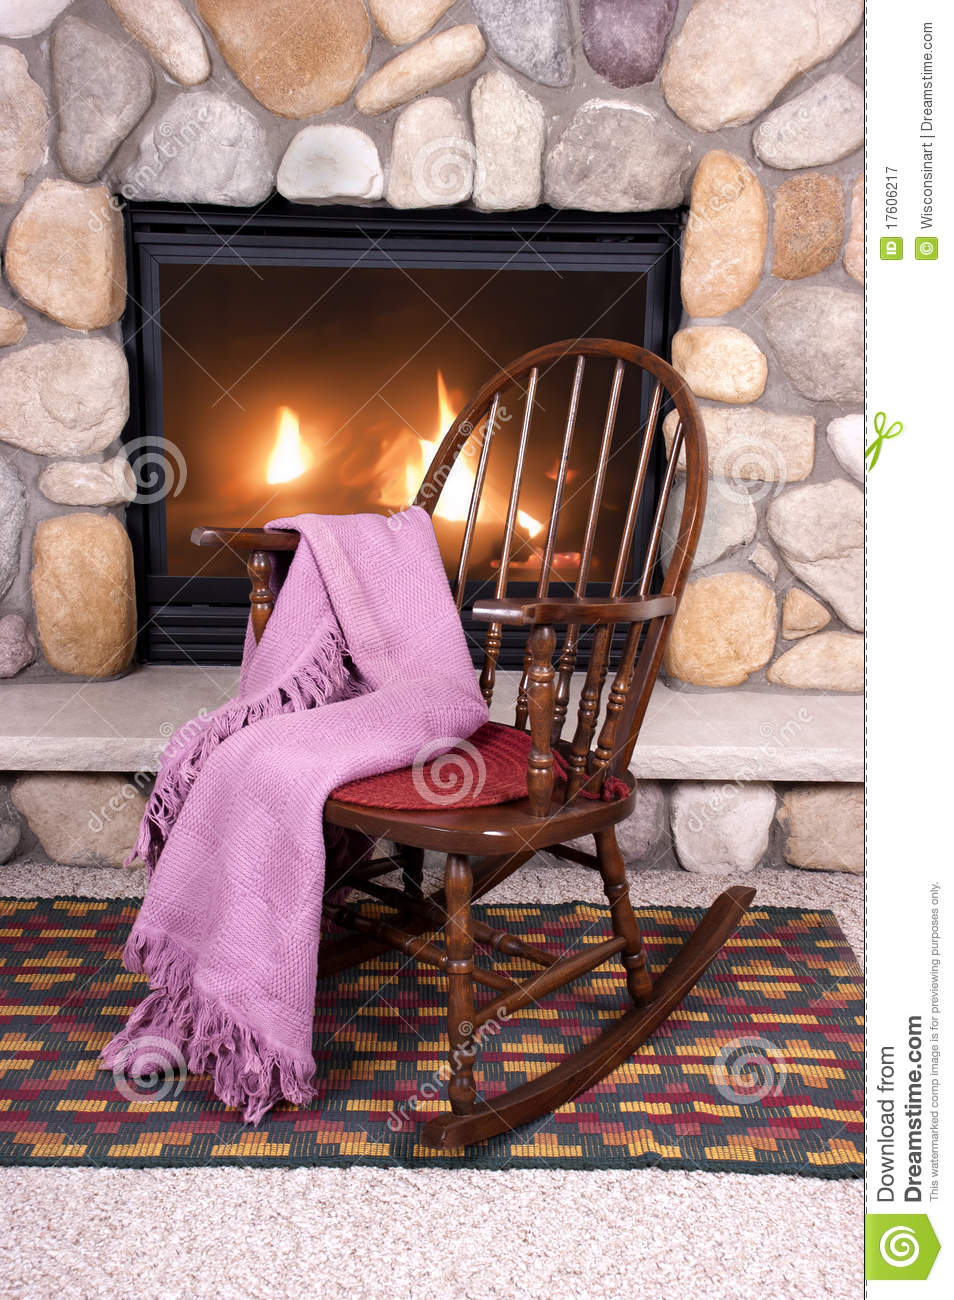 Wood Rocking Chair In Front Of Home Fireplace Stock Image